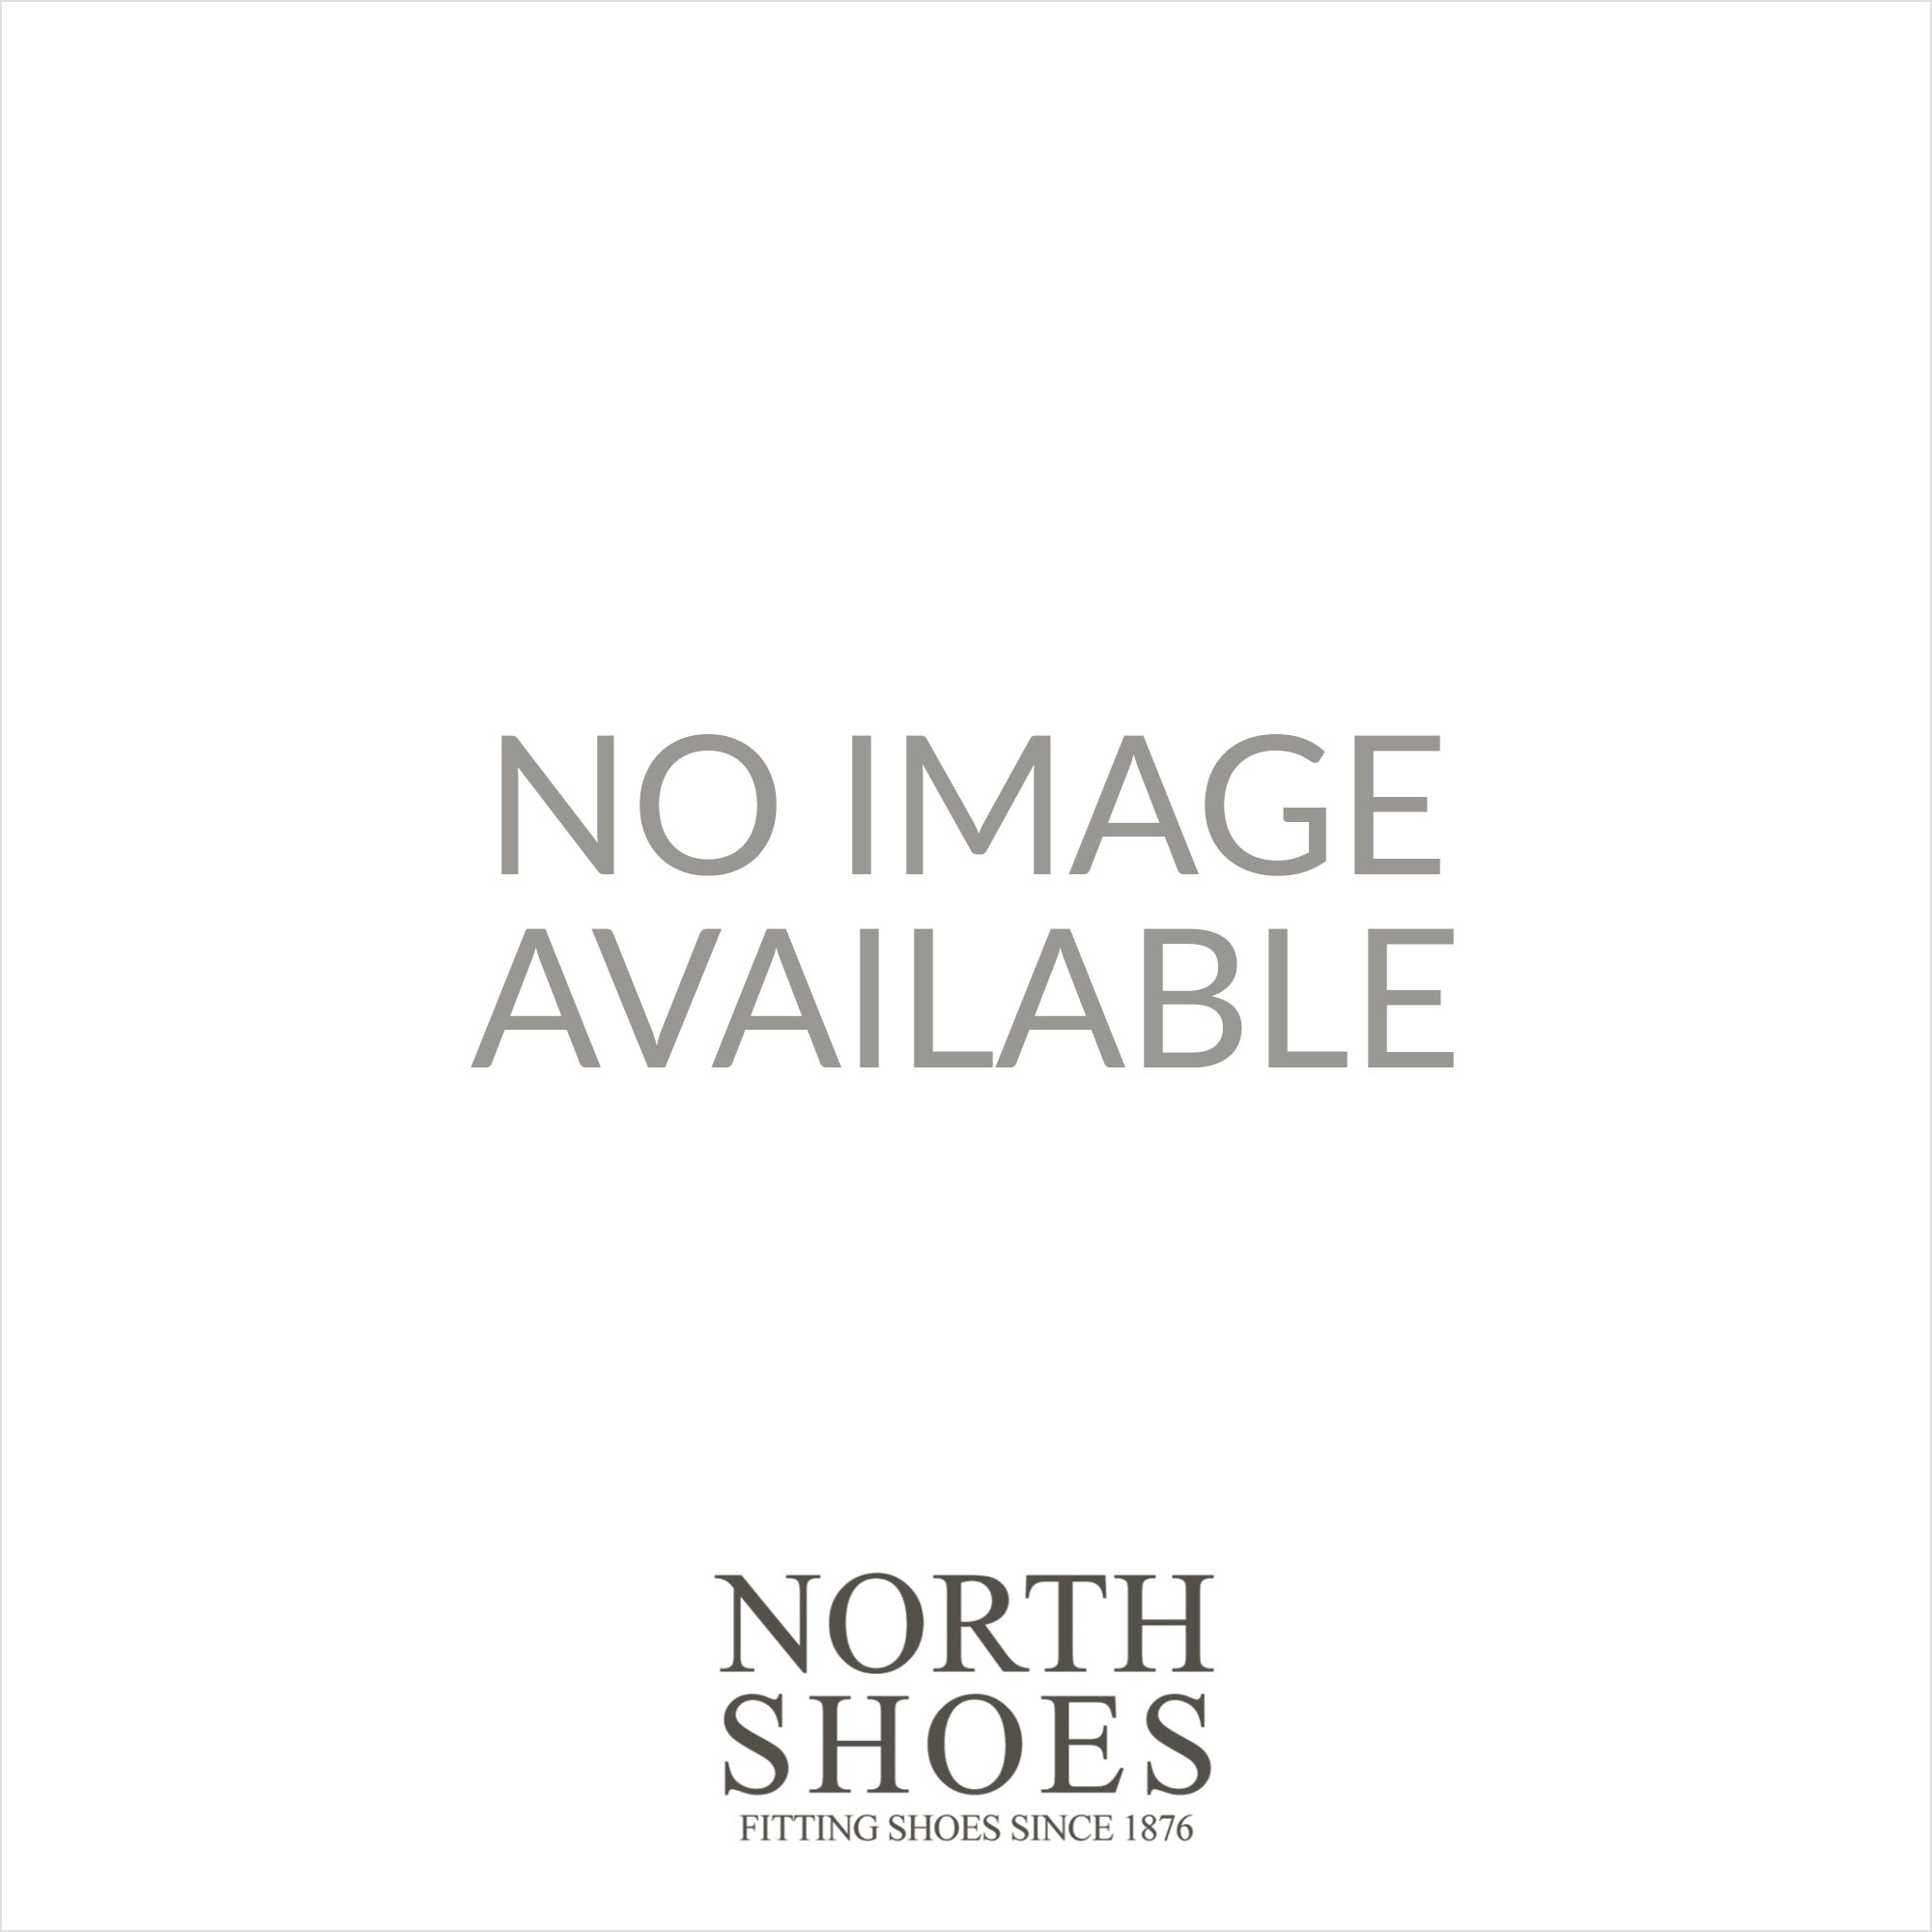 Tarbes Black Striped Canvas Womens Wedge Espadrille Sandal